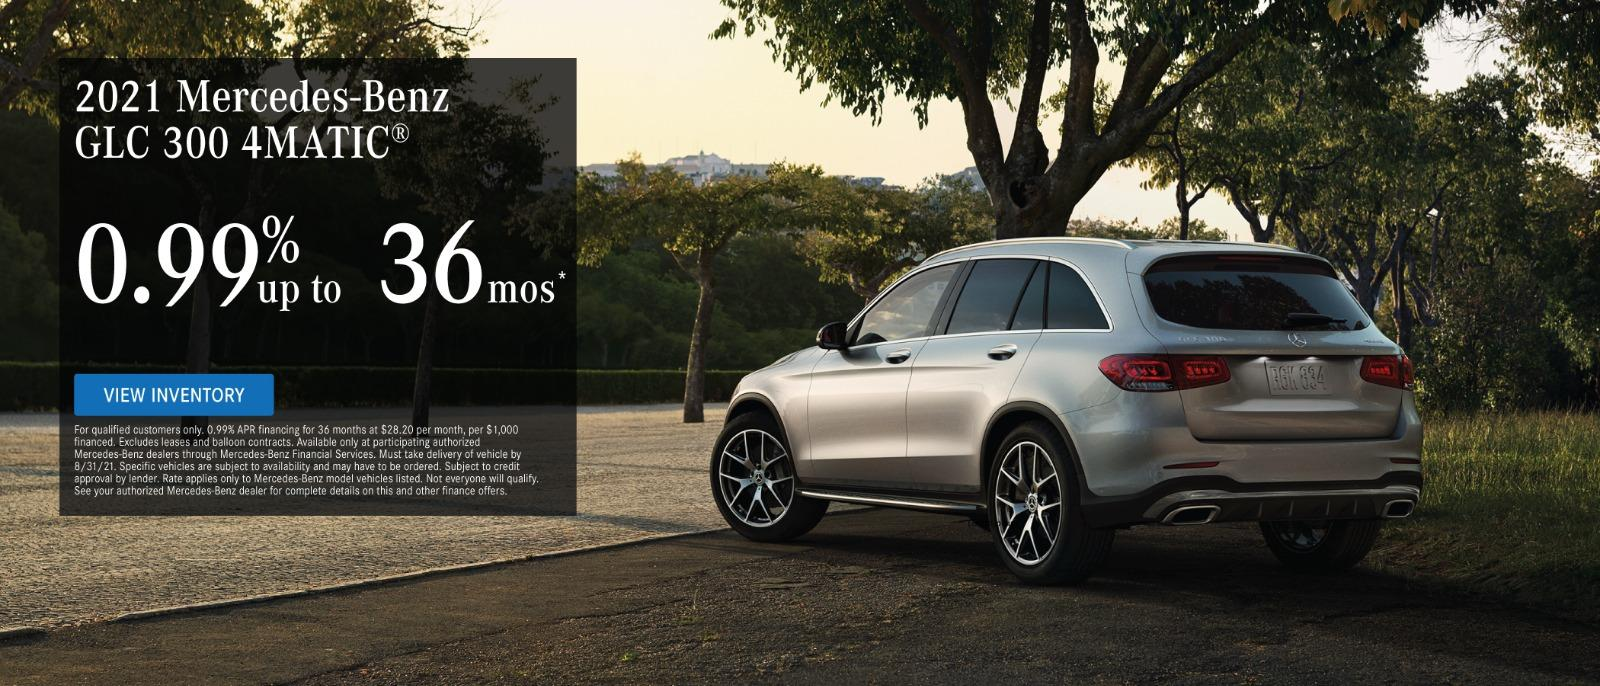 2021 Mercedes GLC 300 4automatic 0.99% up to 36 months